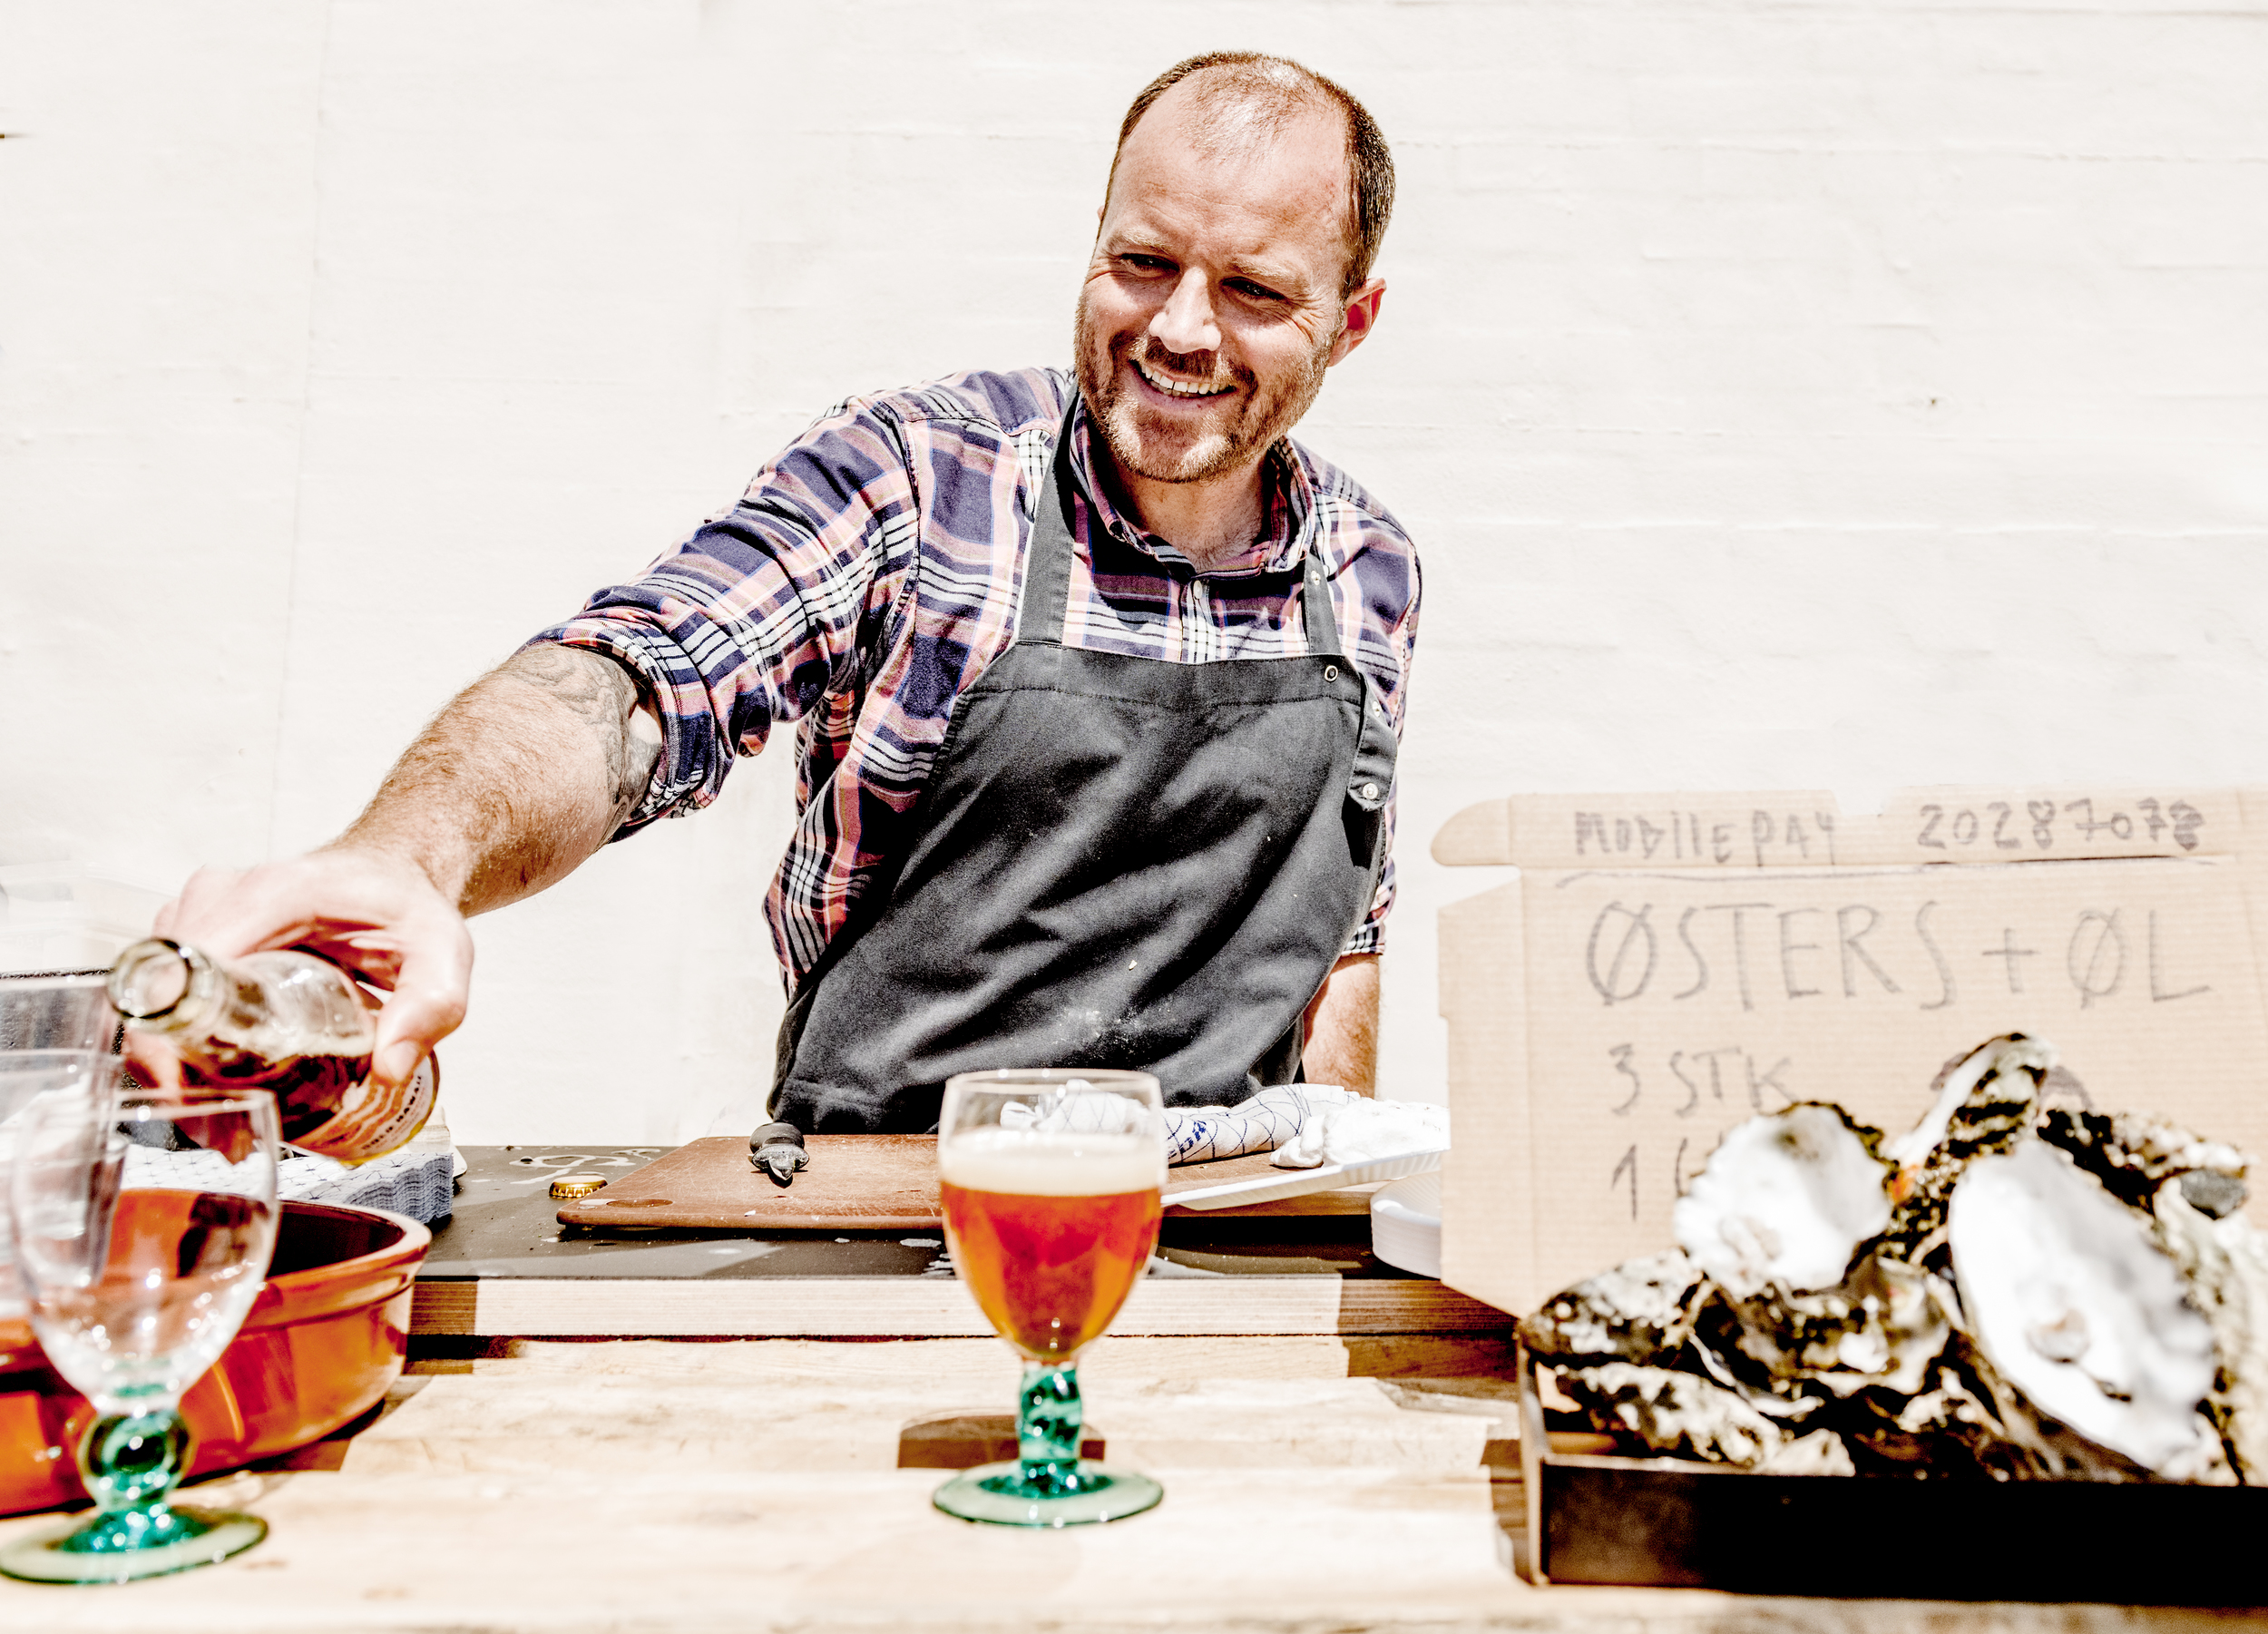 Our local, formerly full-time chef, Christian Poul Petersen, served oysters from Limfjorden along with Cold Hawaii beer.